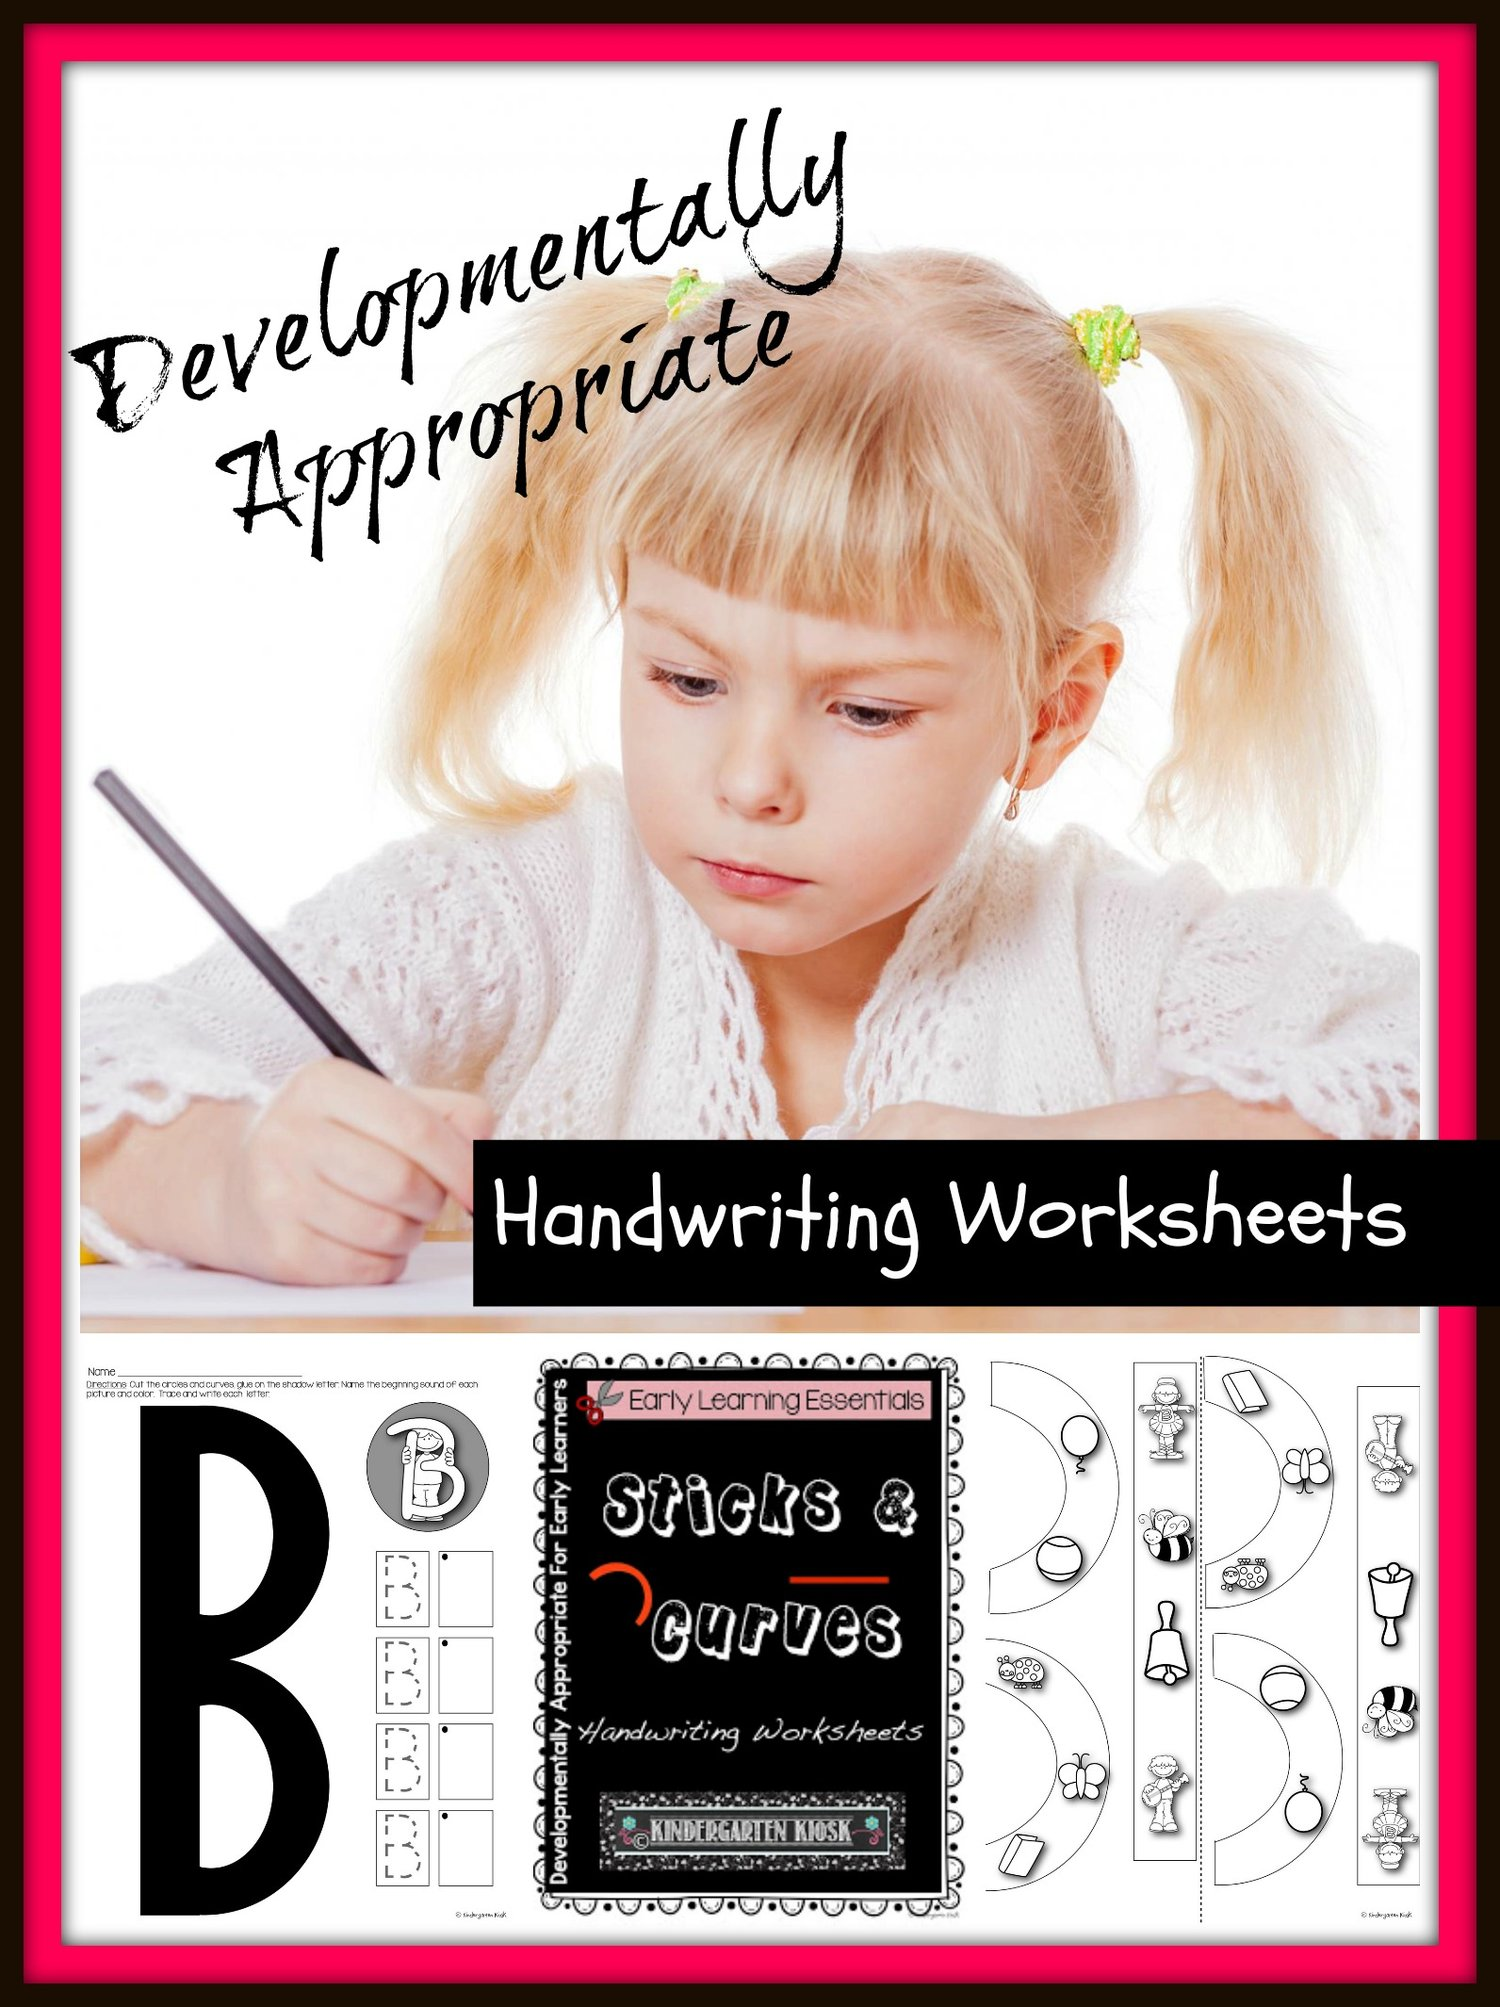 Uppercase Handwriting Worksheets Sticks And Curves Kindergarten Kiosk